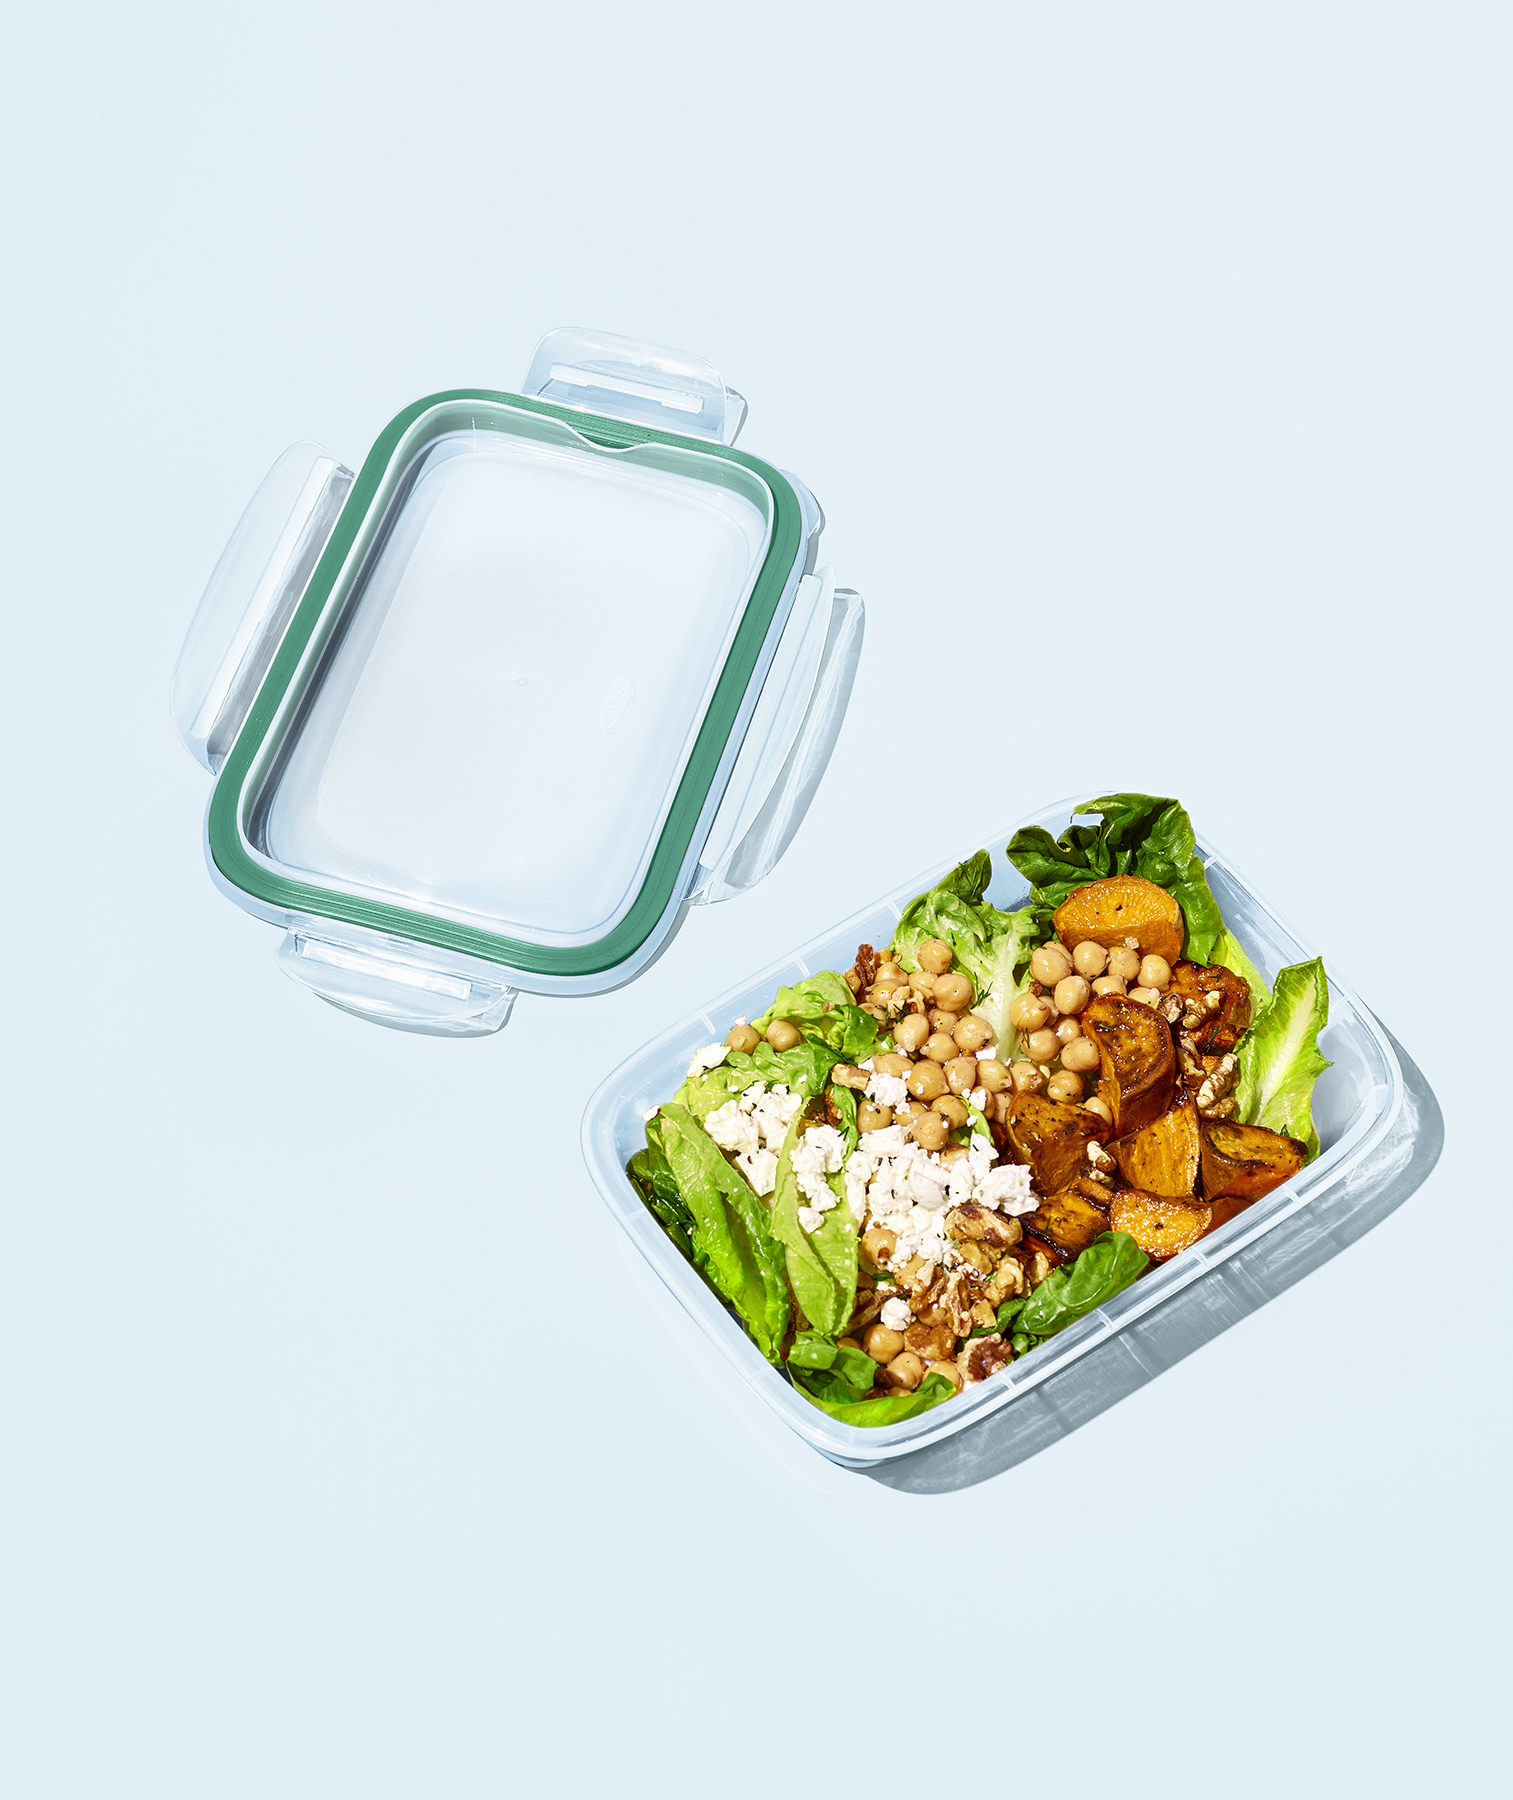 Lunch in container